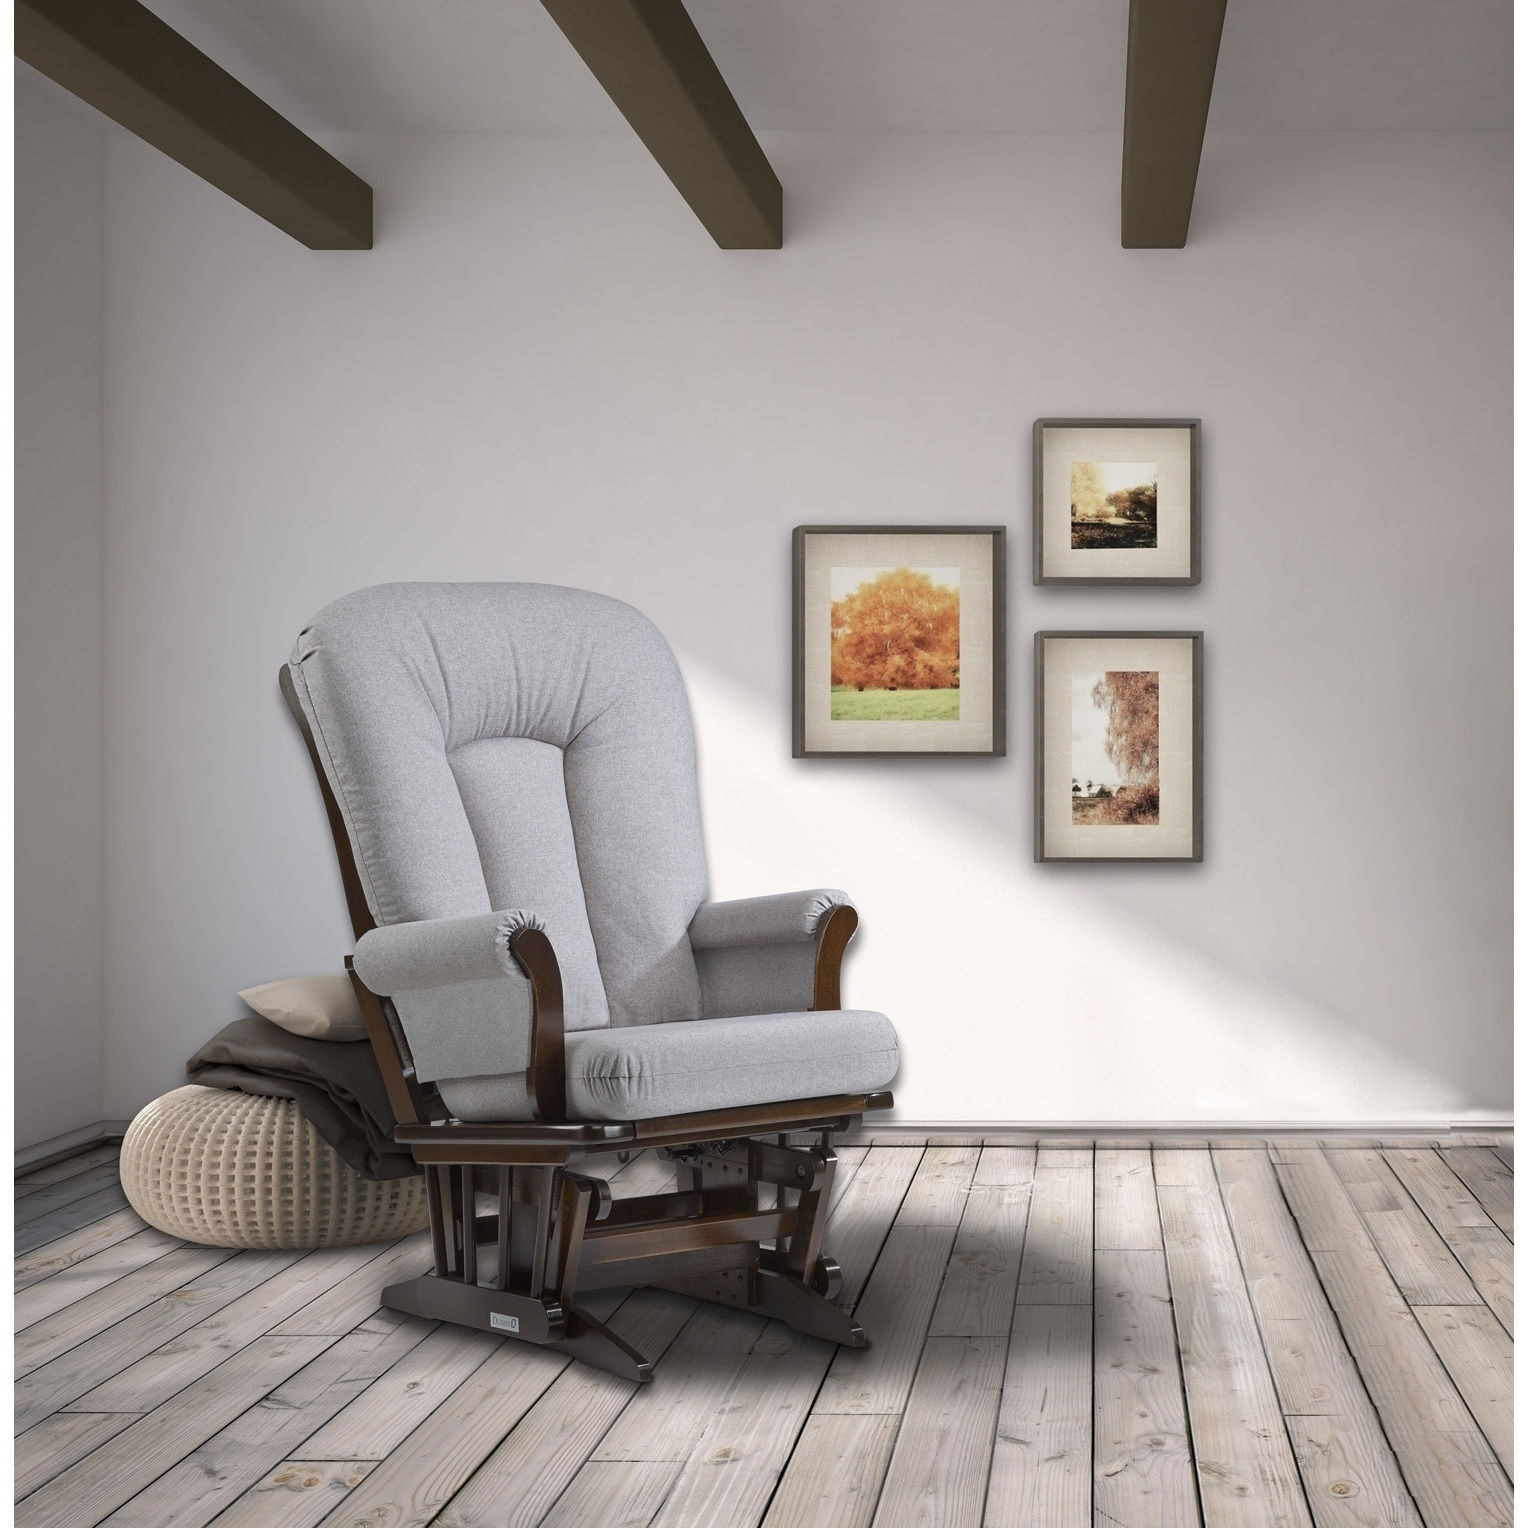 Merveilleux Shop Dutailier Sleigh Glider In Pebble Grey And Coffee Finish   Free  Shipping Today   Overstock.com   16077708